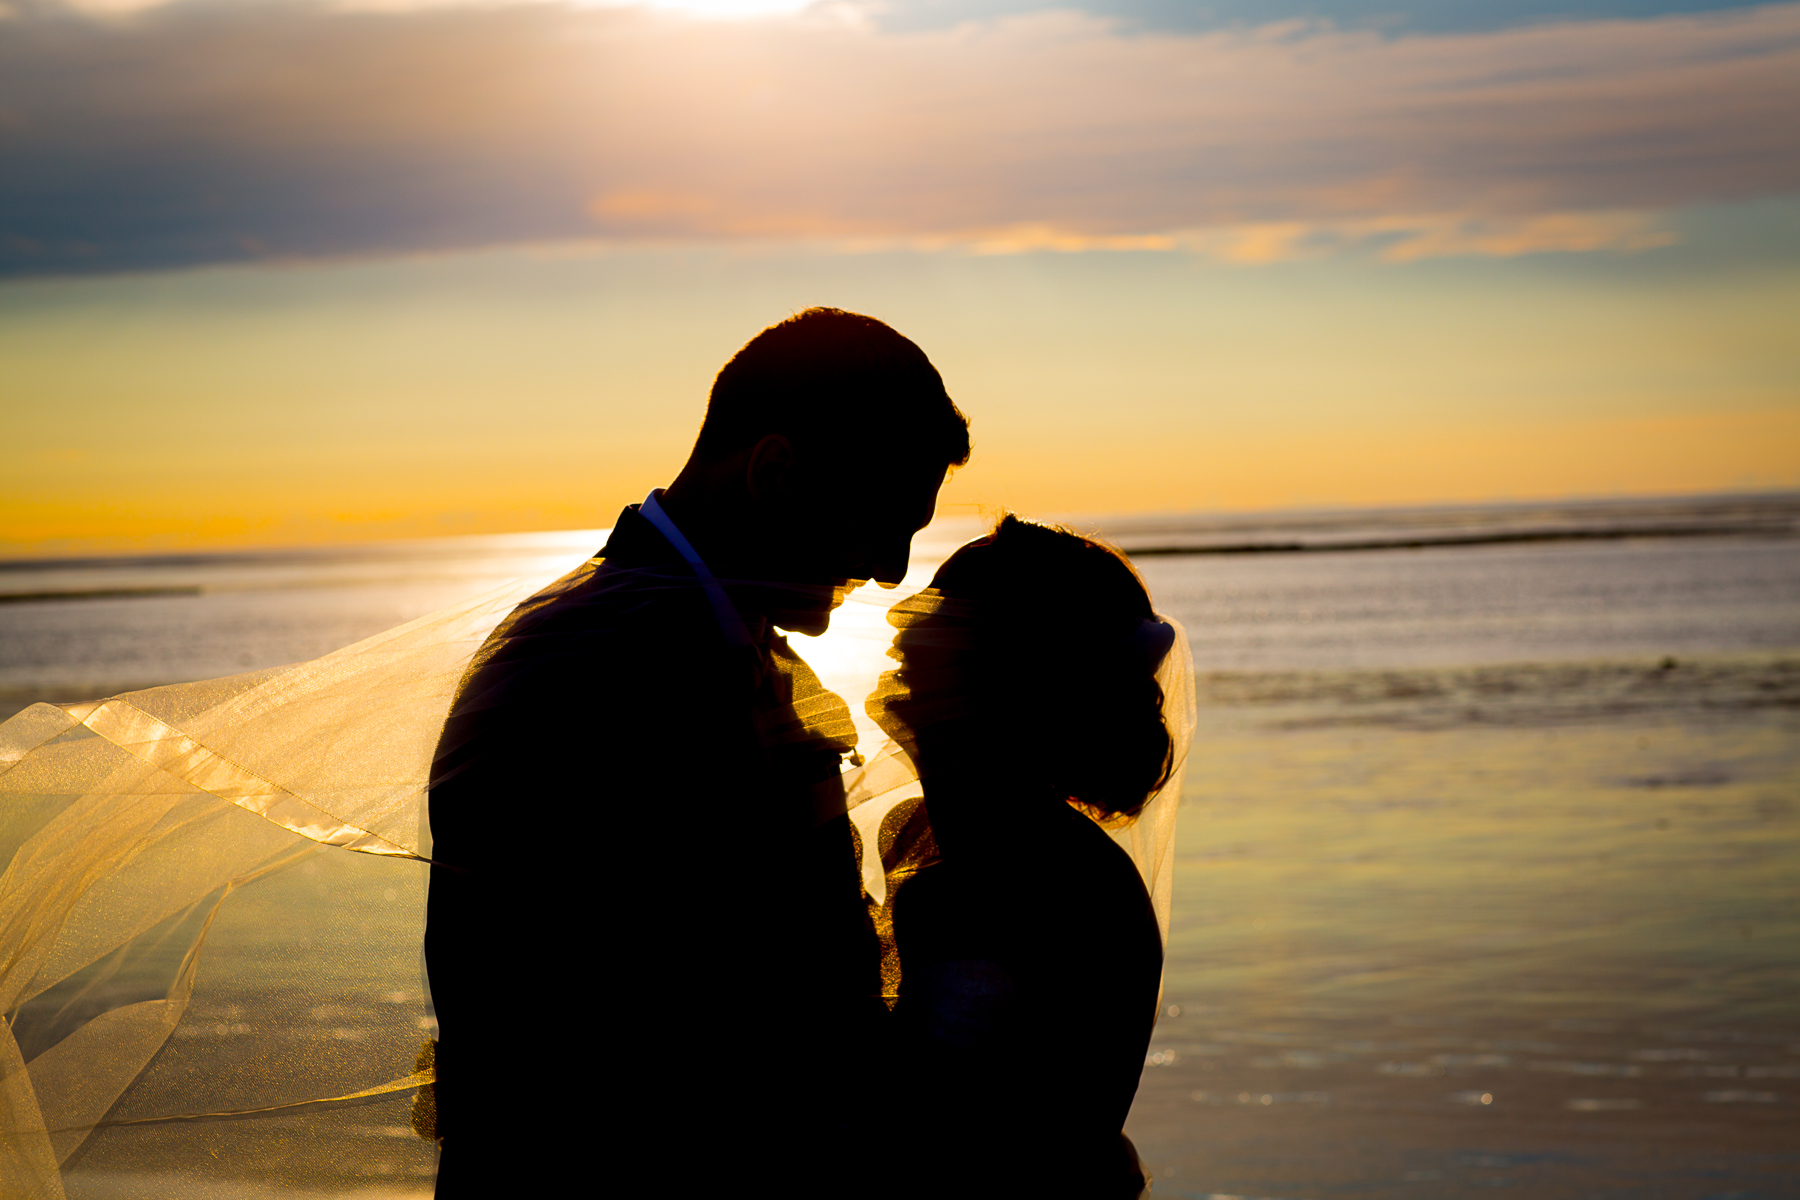 sunset beach wedding photo